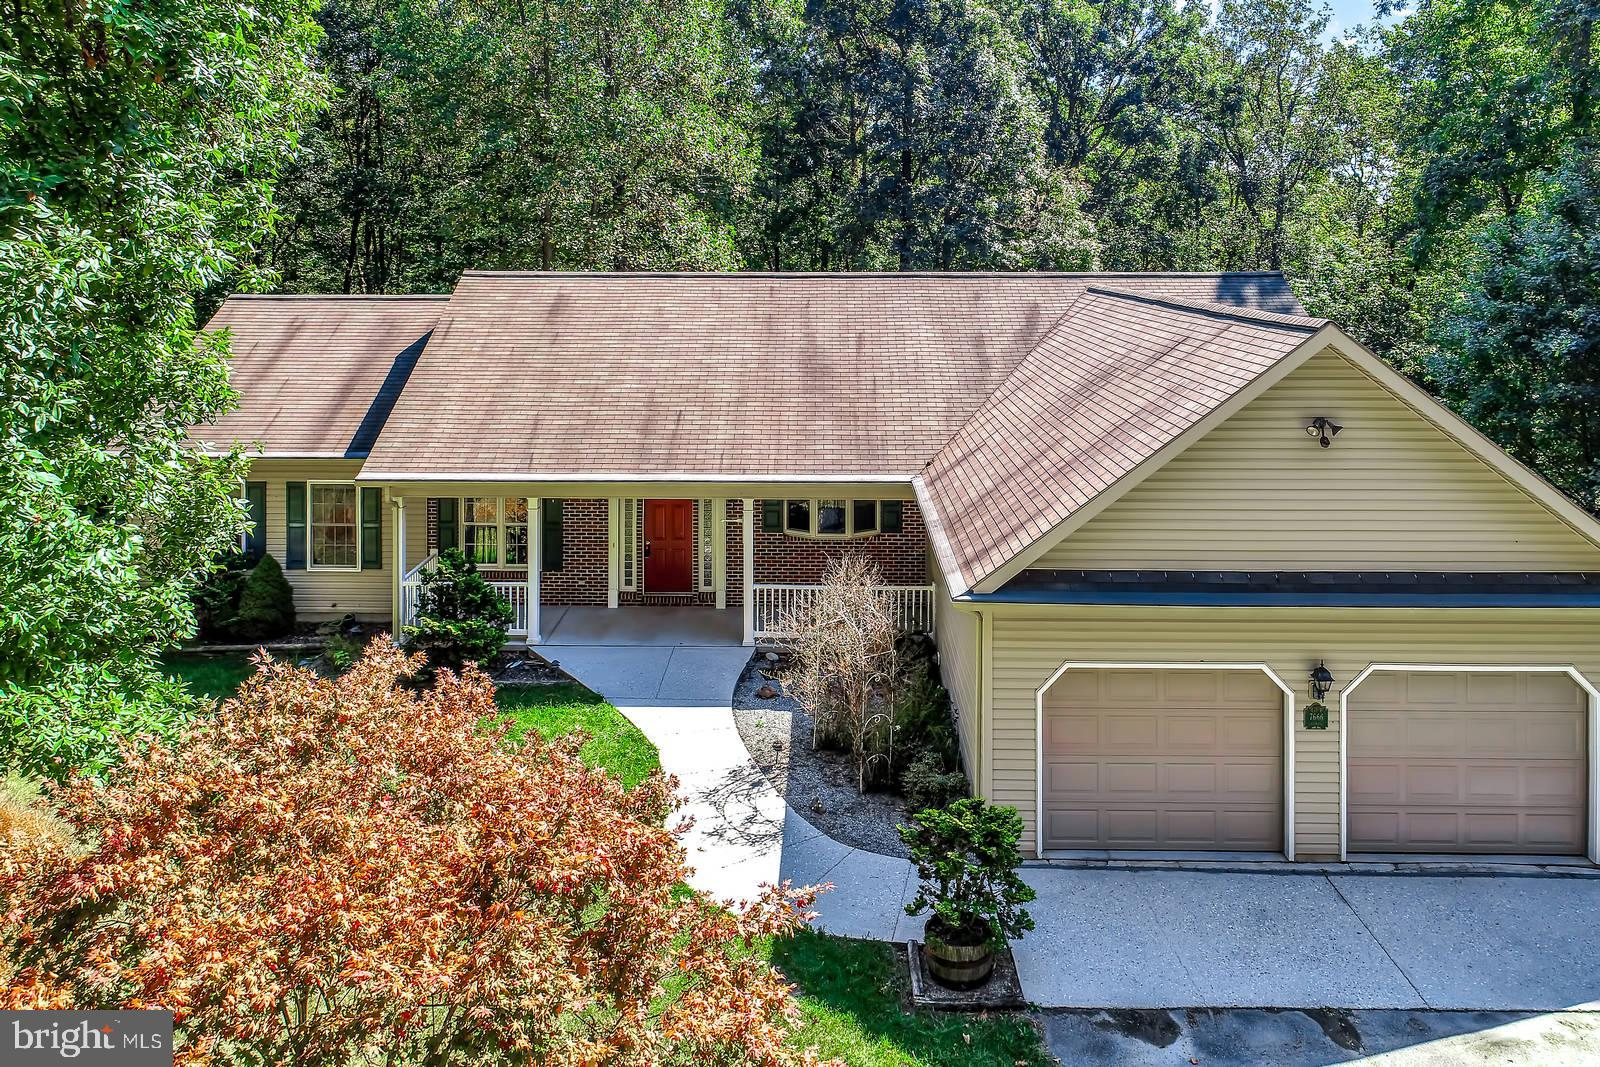 7666 HICKORY ROAD, STEWARTSTOWN, PA 17363